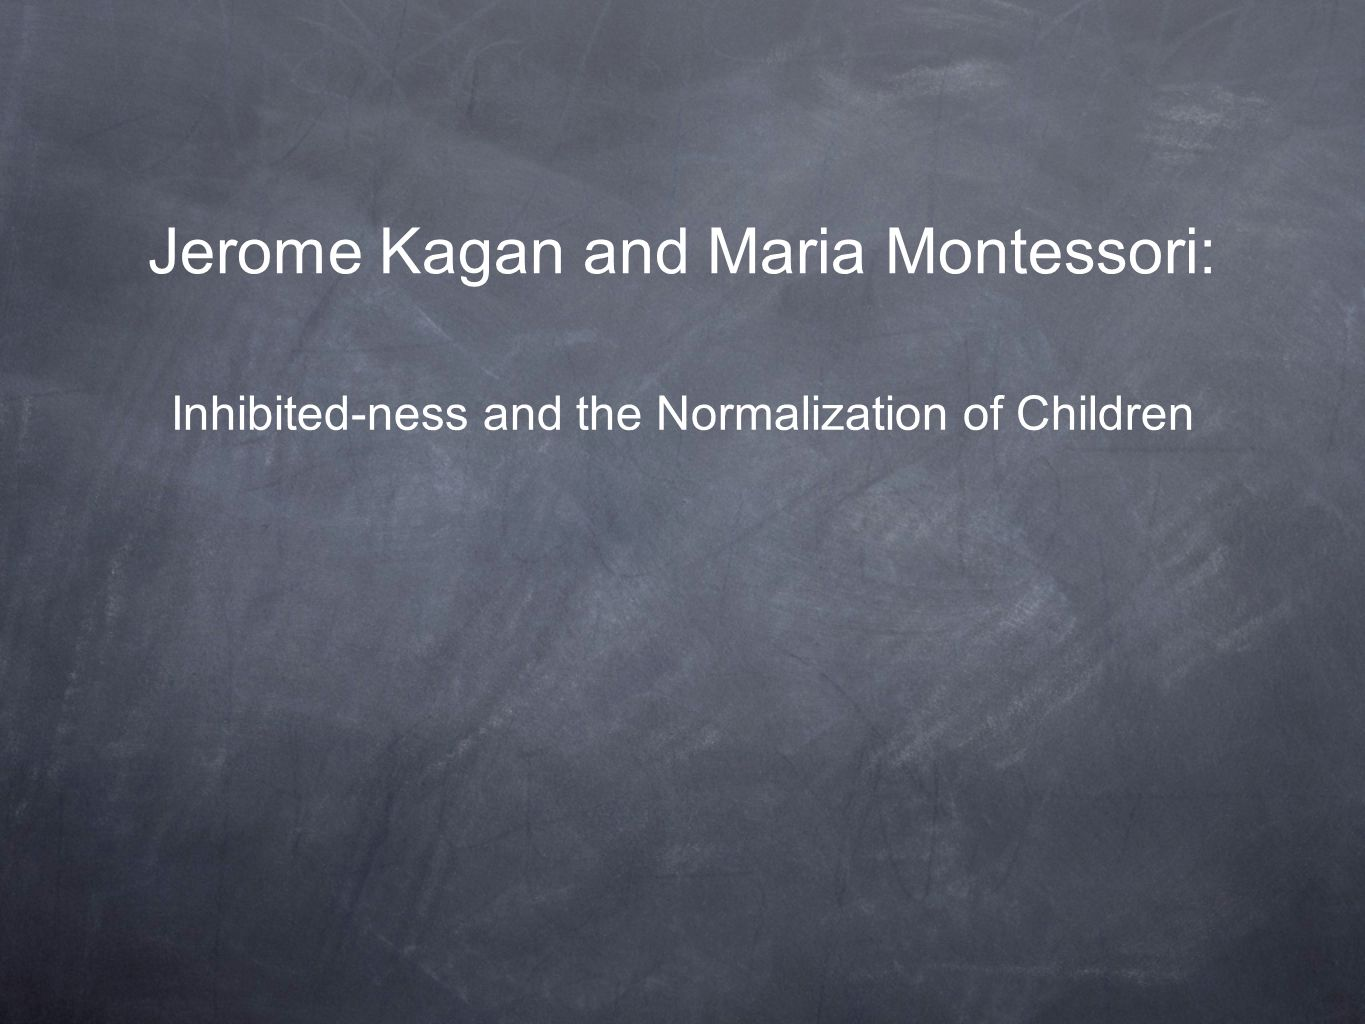 Jerome Kagan and Maria Montessori: